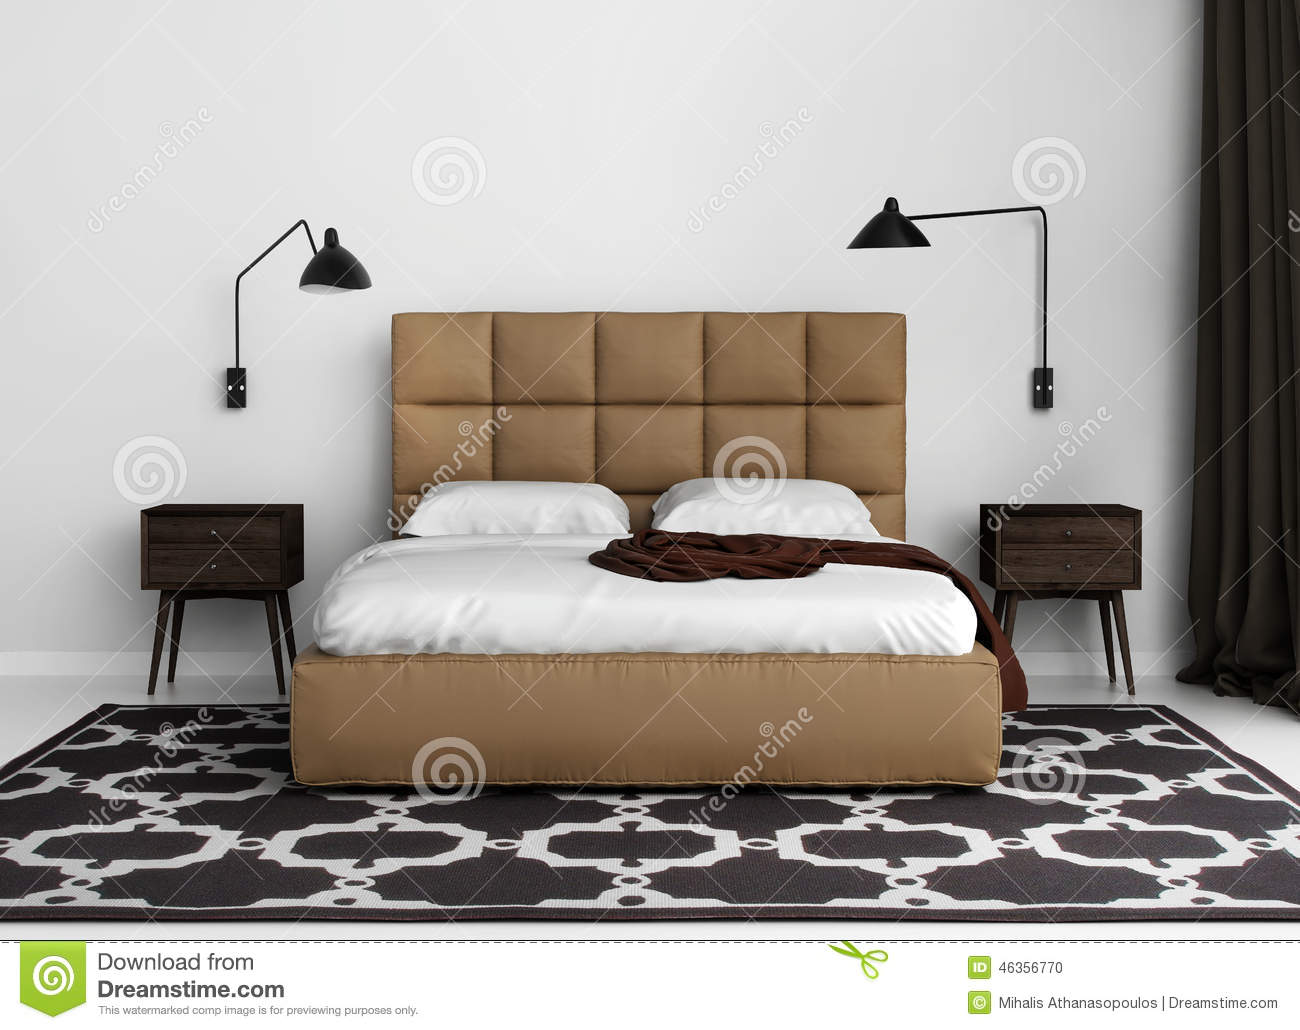 chambre coucher de luxe l gante contemporaine avec le. Black Bedroom Furniture Sets. Home Design Ideas